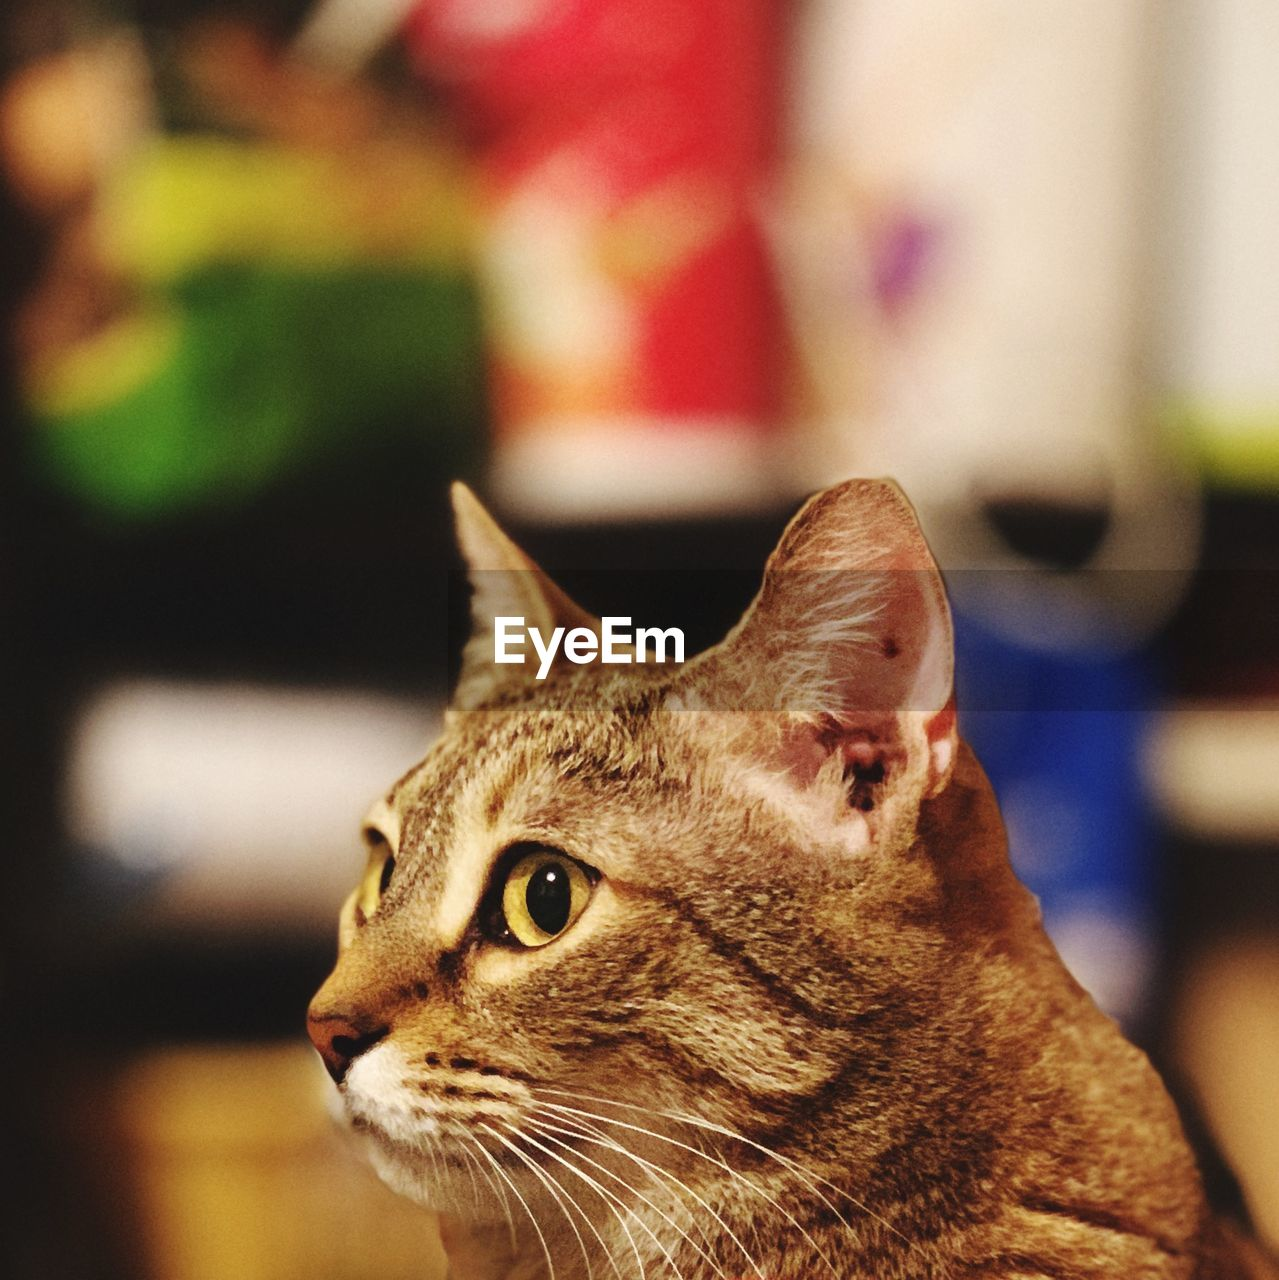 domestic animals, cat, domestic, animal themes, pets, mammal, feline, animal, one animal, domestic cat, vertebrate, close-up, focus on foreground, whisker, animal body part, no people, animal head, looking away, looking, indoors, animal eye, tabby